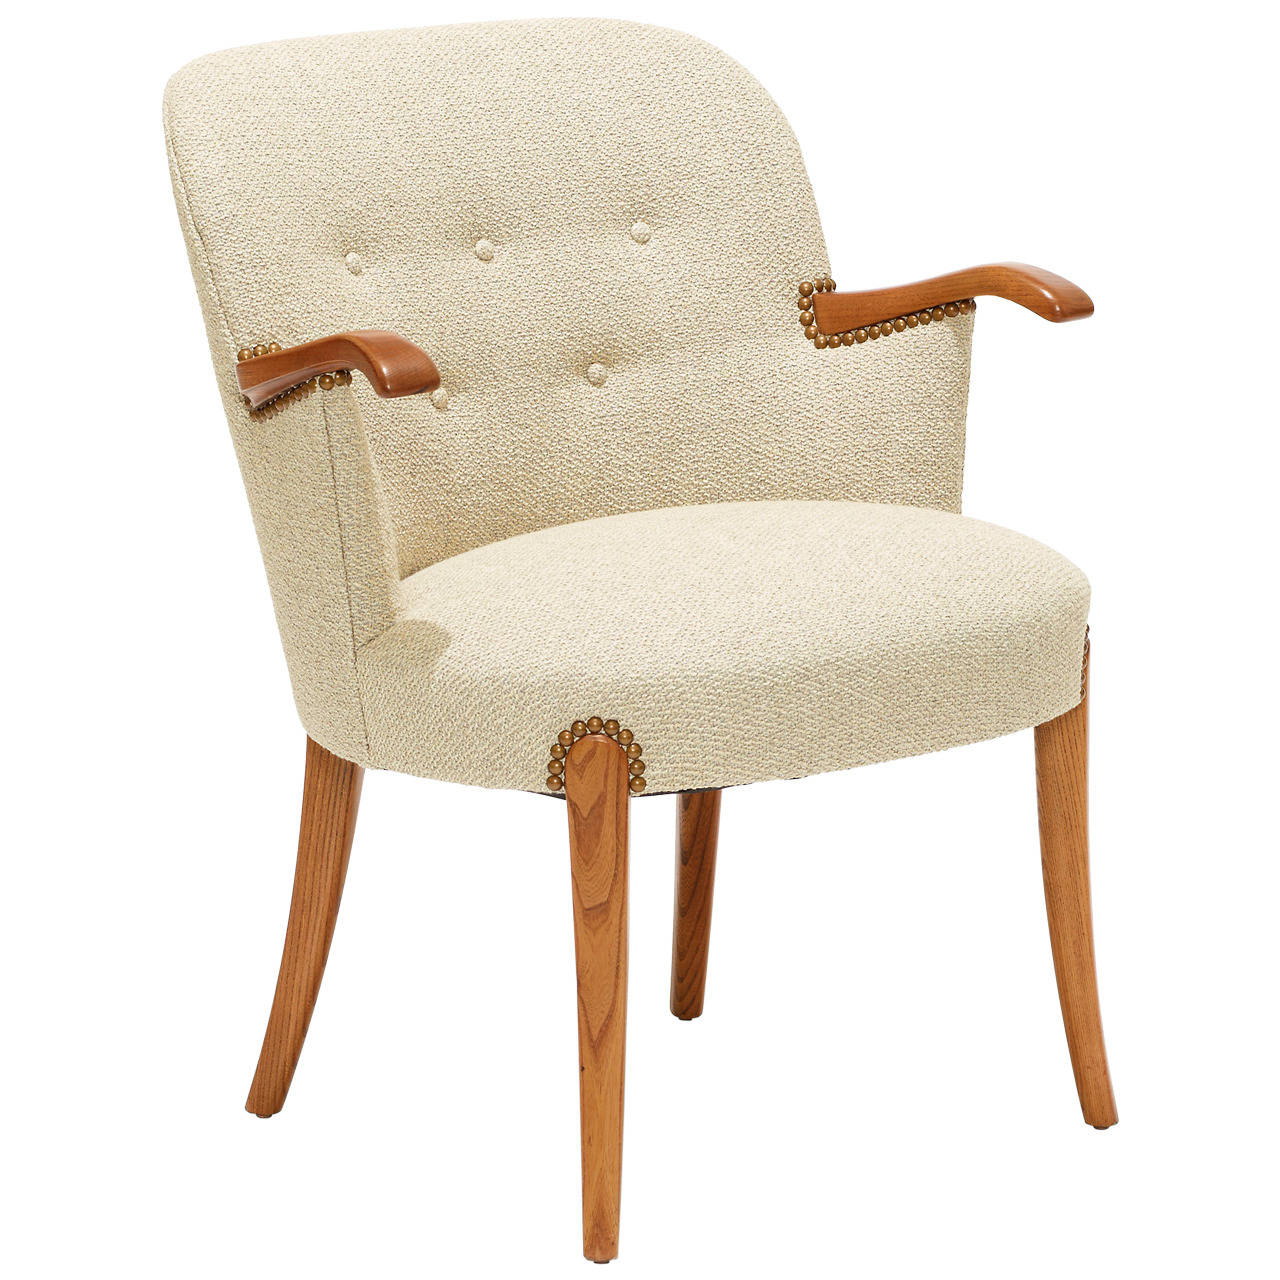 desk chair legs ergonomic office reviews with oak arms and by otto schulz at 1stdibs